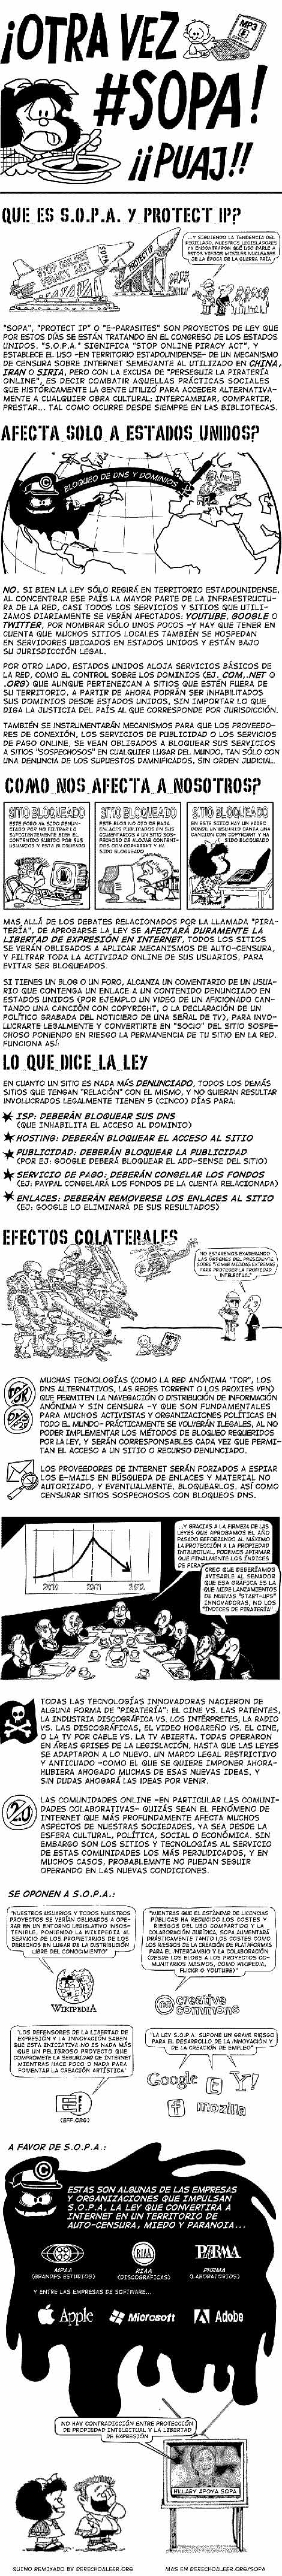 http://blogs.20minutos.es/codigo-abierto/files/2012/01/sopamix.jpg